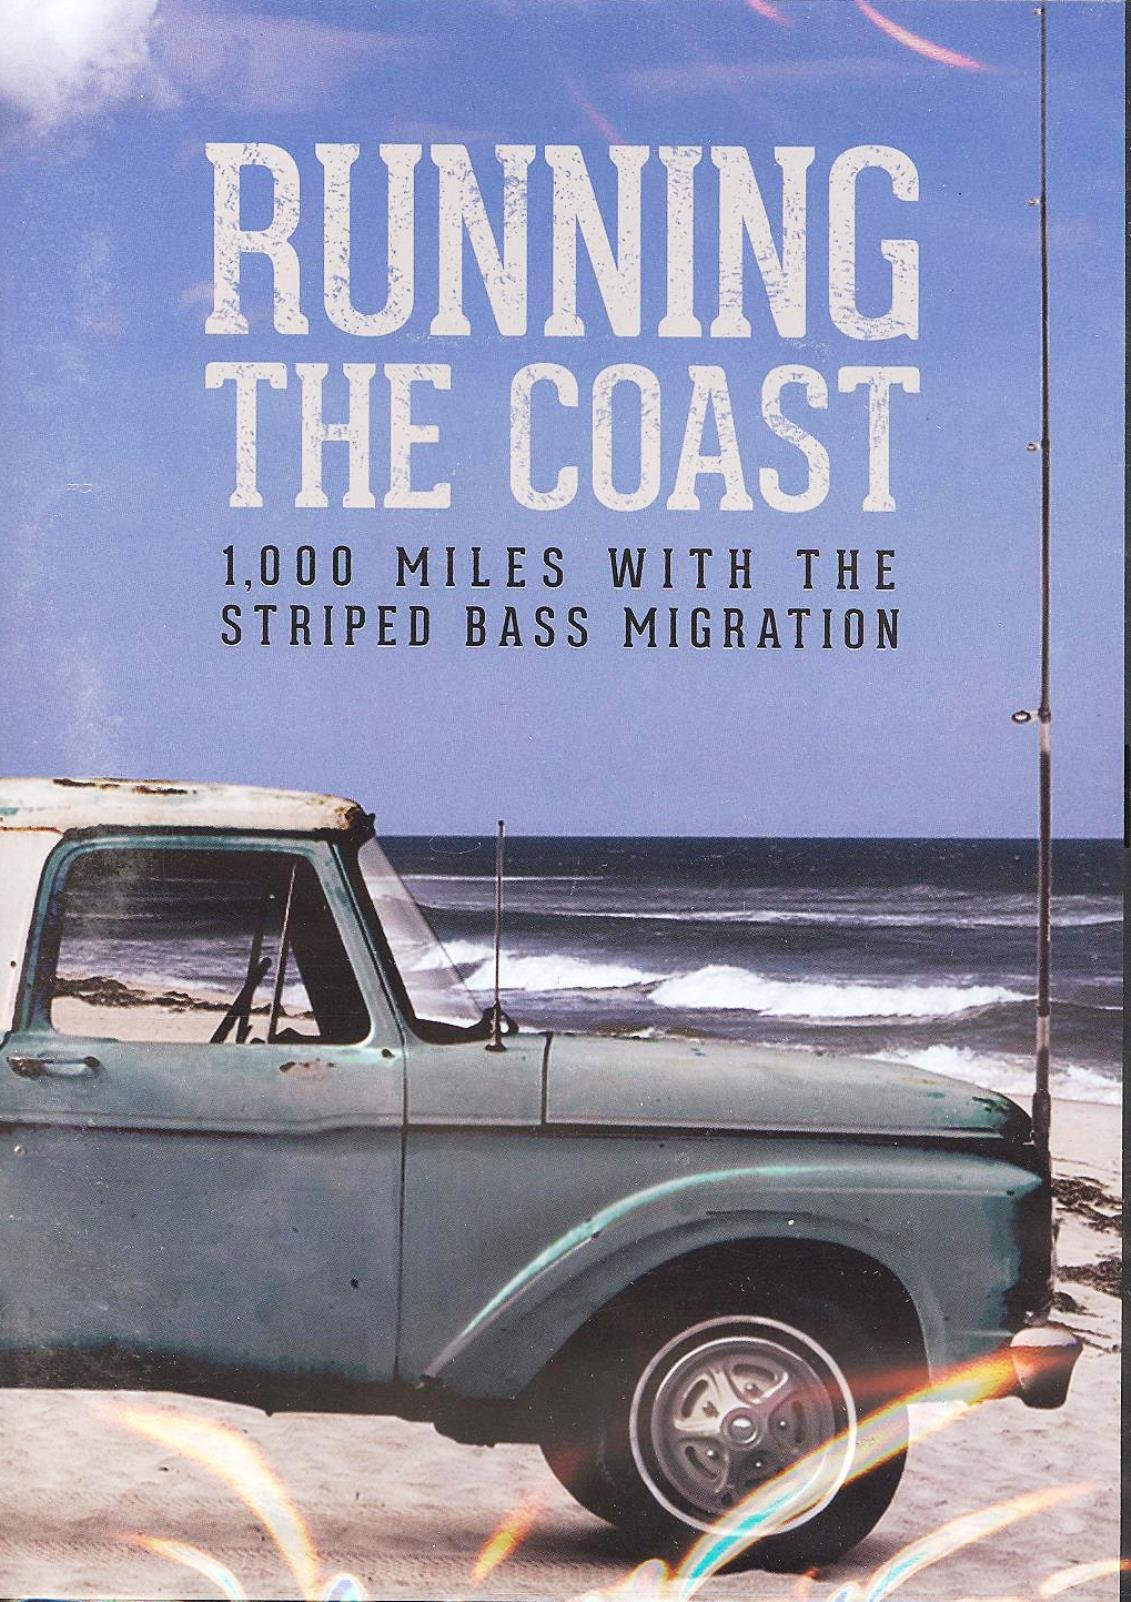 Running the Coast: 1,000 MILES WITH THE STRIPED BASS MIGRATION by Jamie Howard - with both fly rods and conventional by